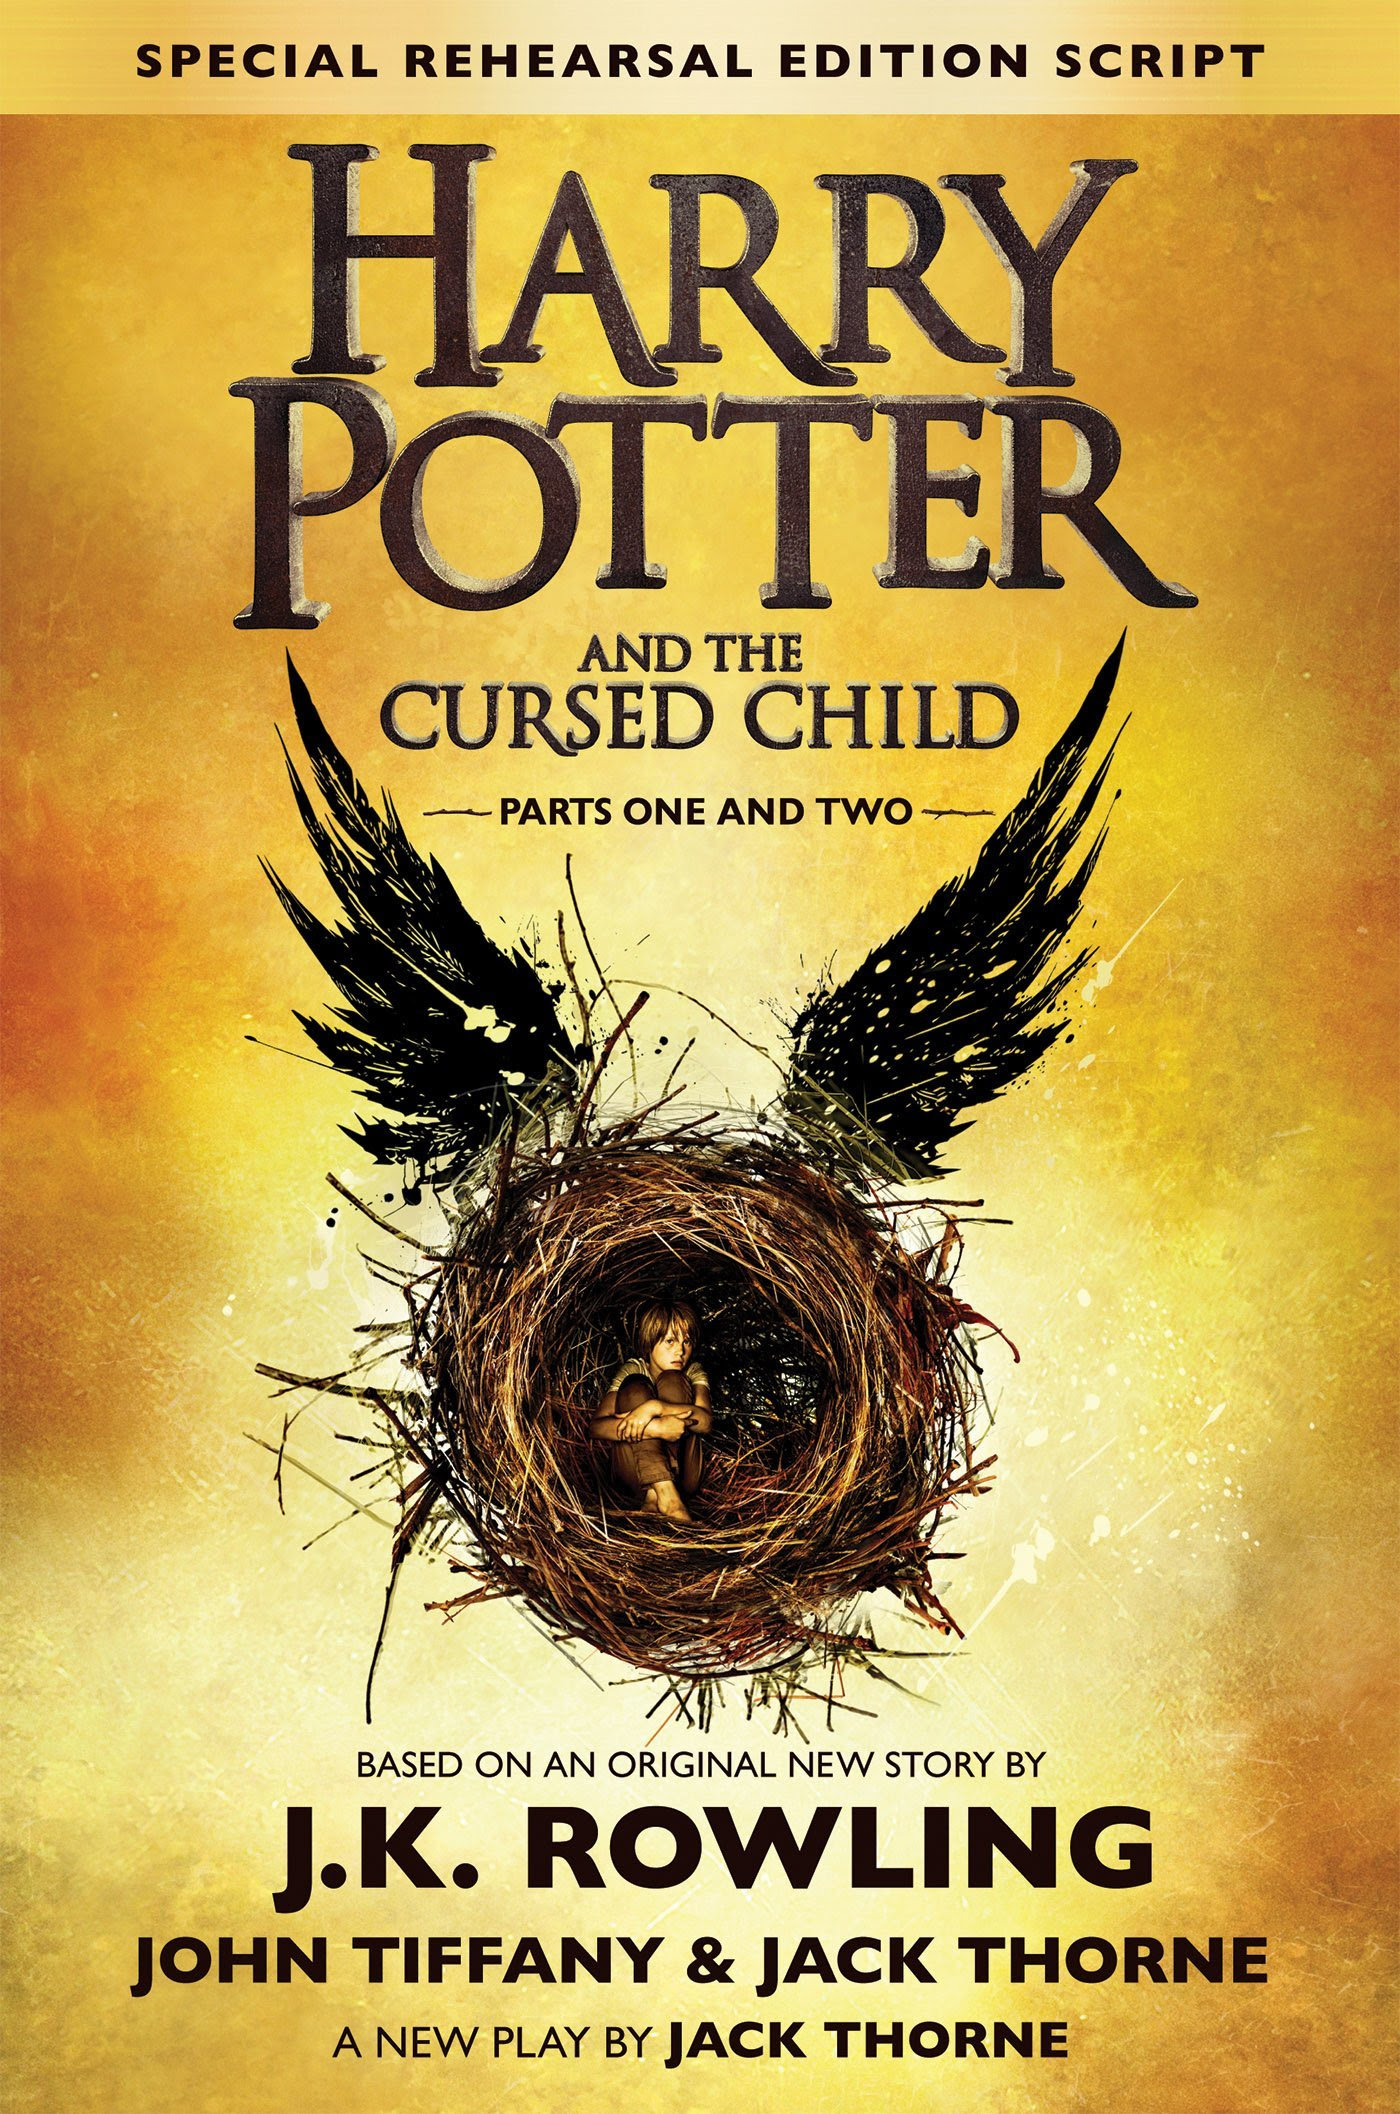 Bildergebnis für harry potter and the cursed child